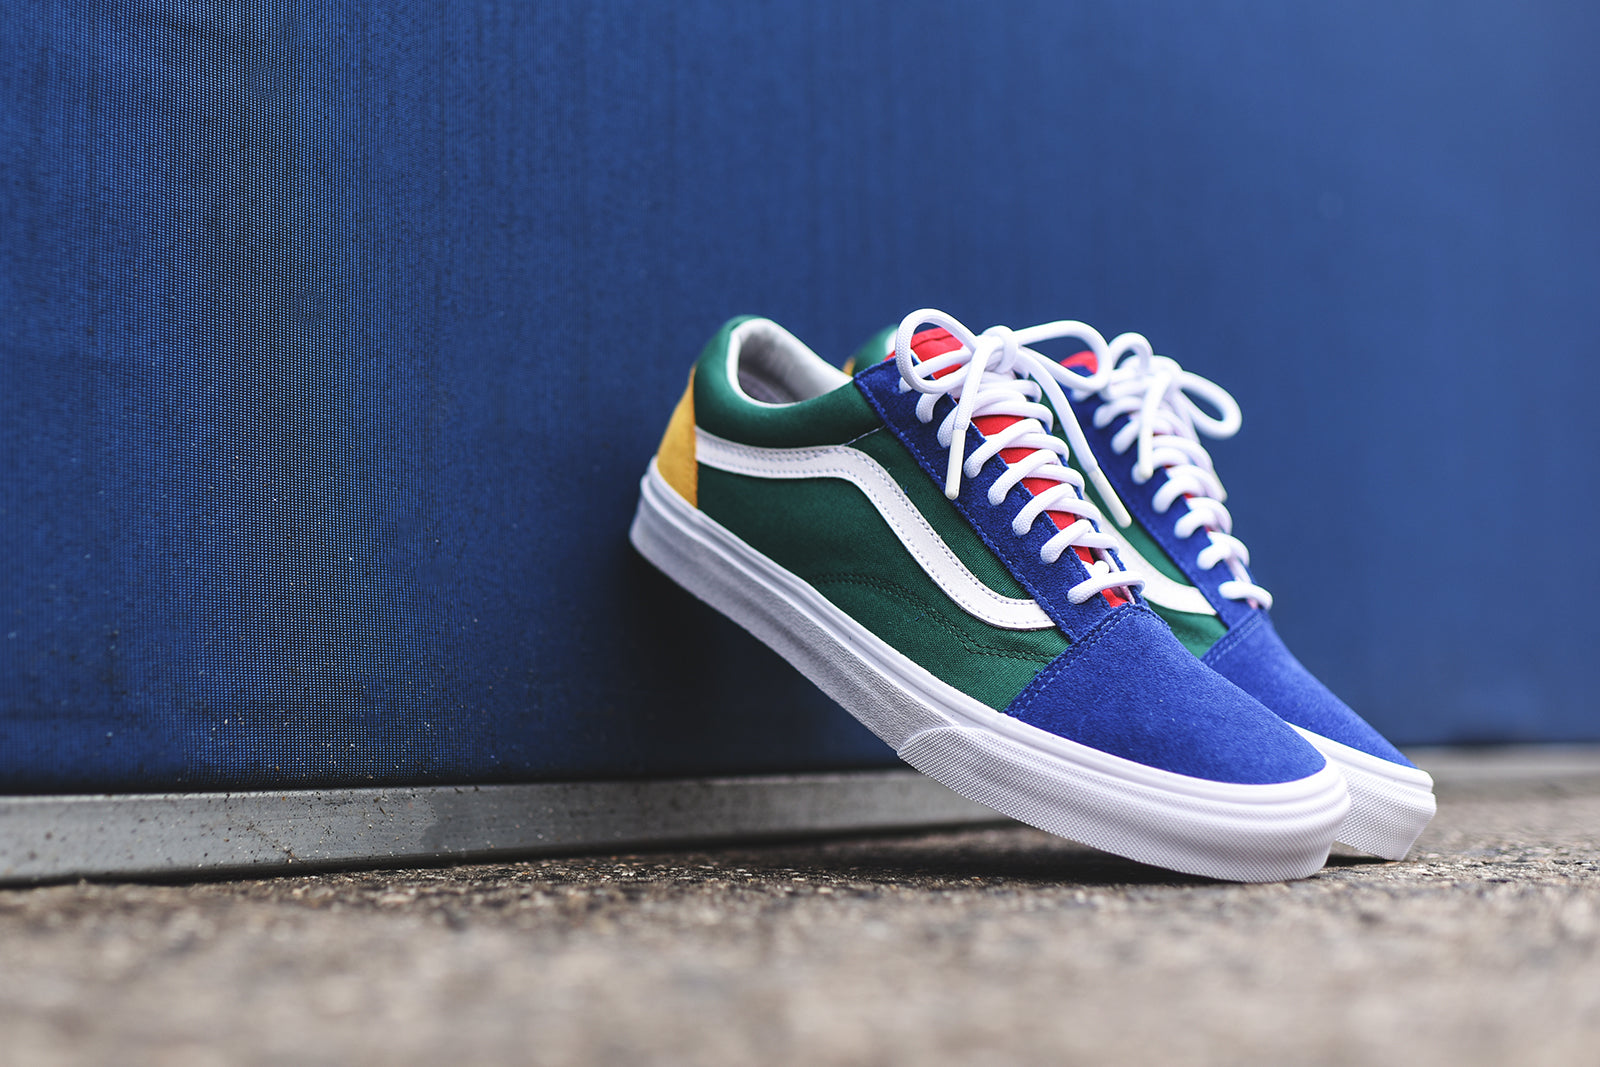 vans old skool yacht club size 8